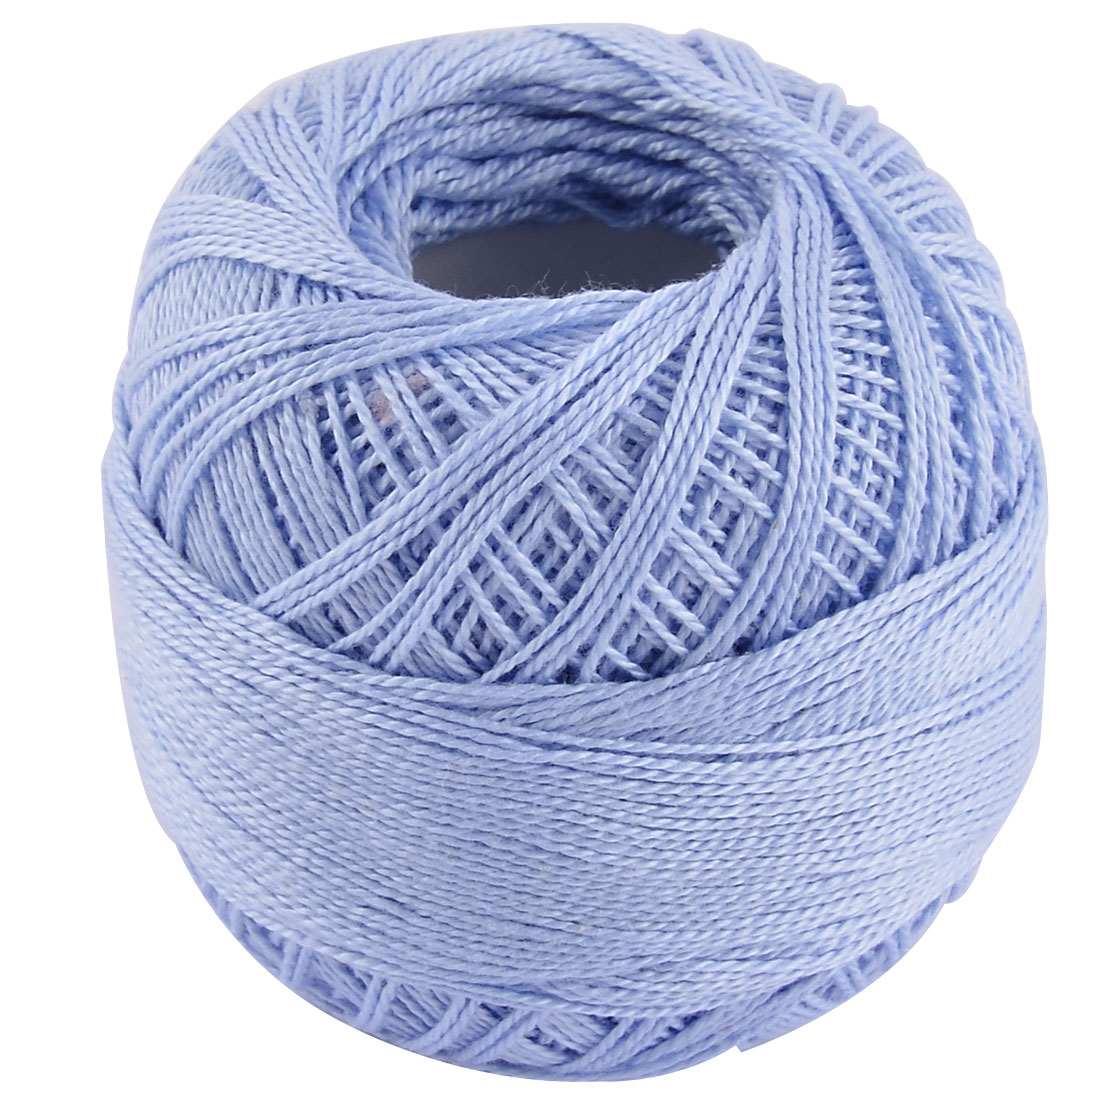 Cotton Handcraft Hand Knitting Crochet DIY Scarf Shawls Sweater Yarn Blue